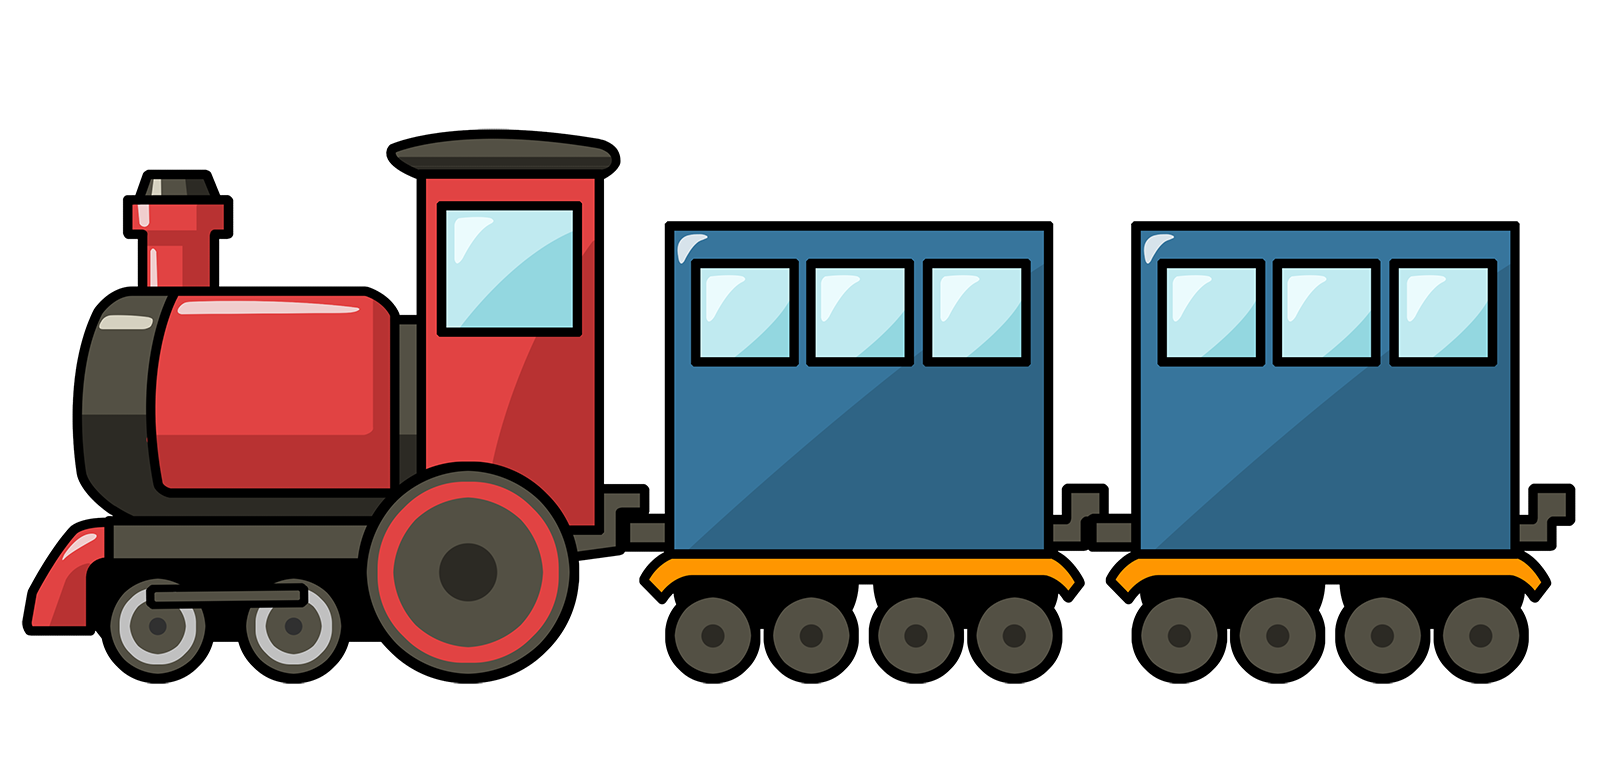 Free Cute Cartoon Train Clip Art